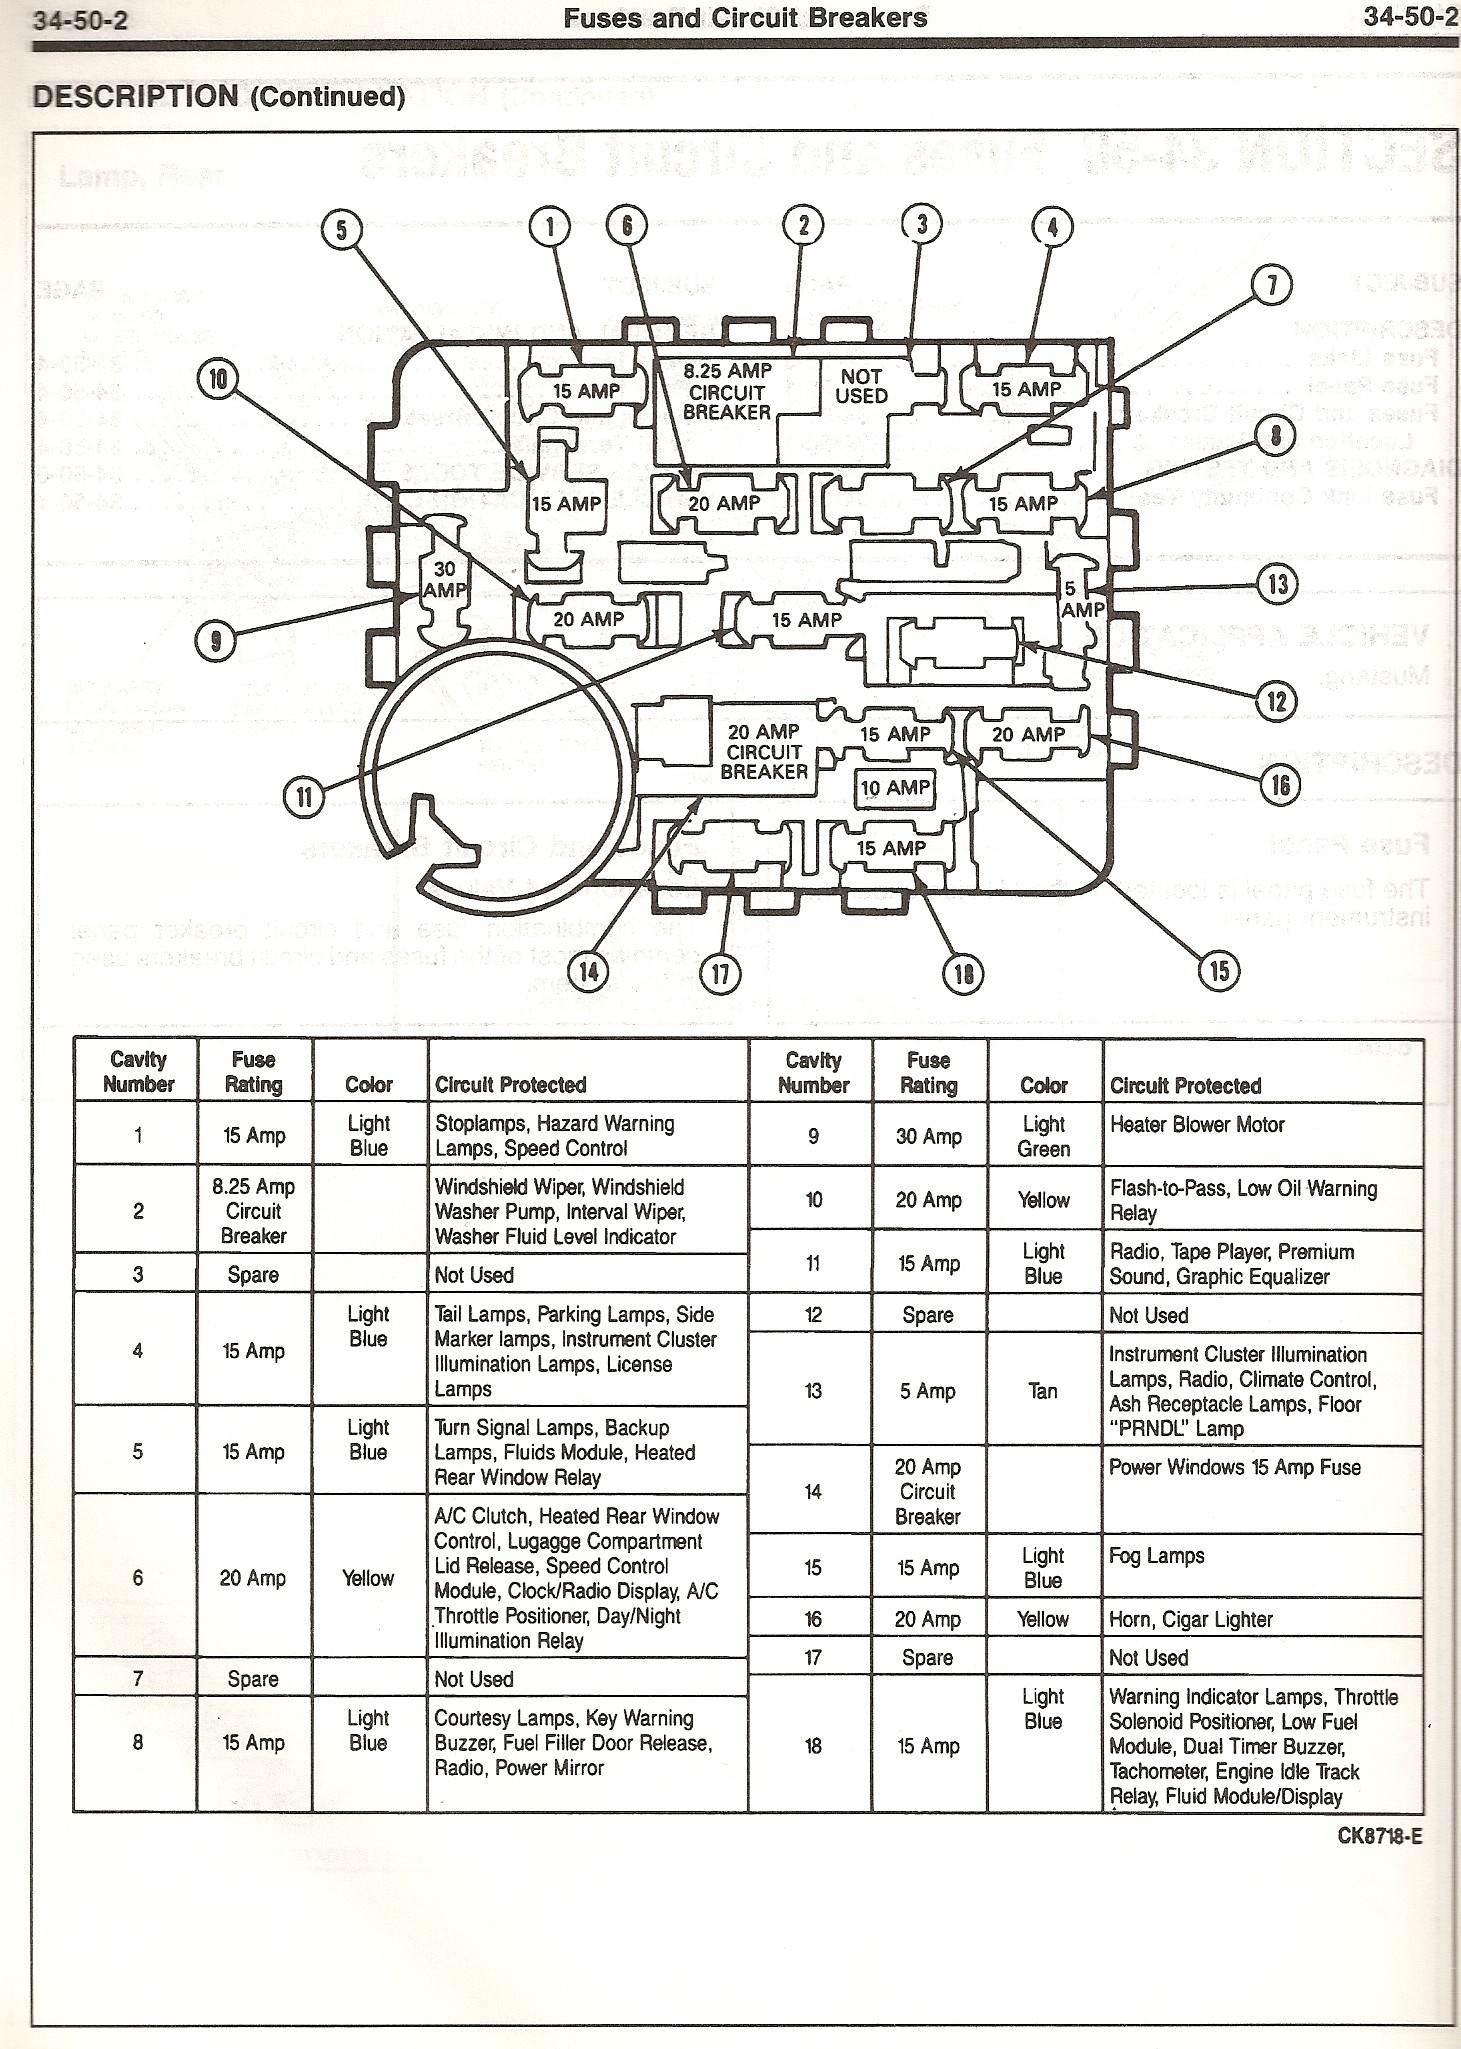 2005 ford Explorer Engine Diagram 1973 ford F100 Fuse Box Wiring ...